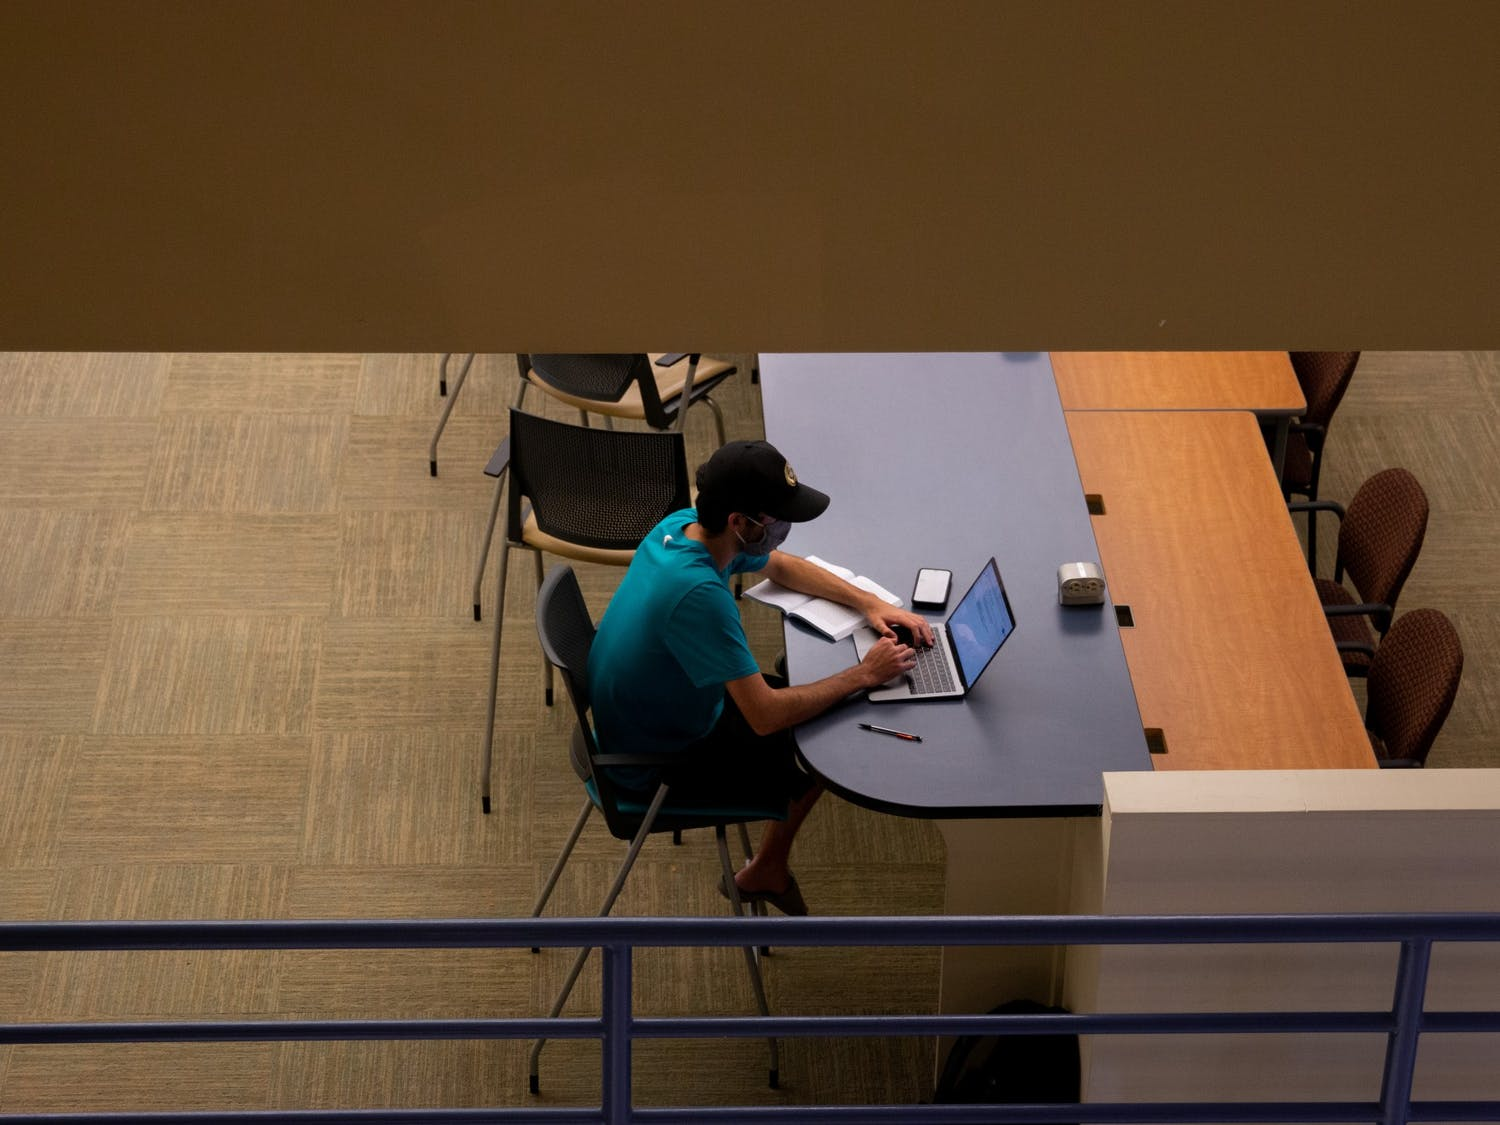 Students use Davis Library's study spaces in Chapel Hill, NC, on Sept. 23.